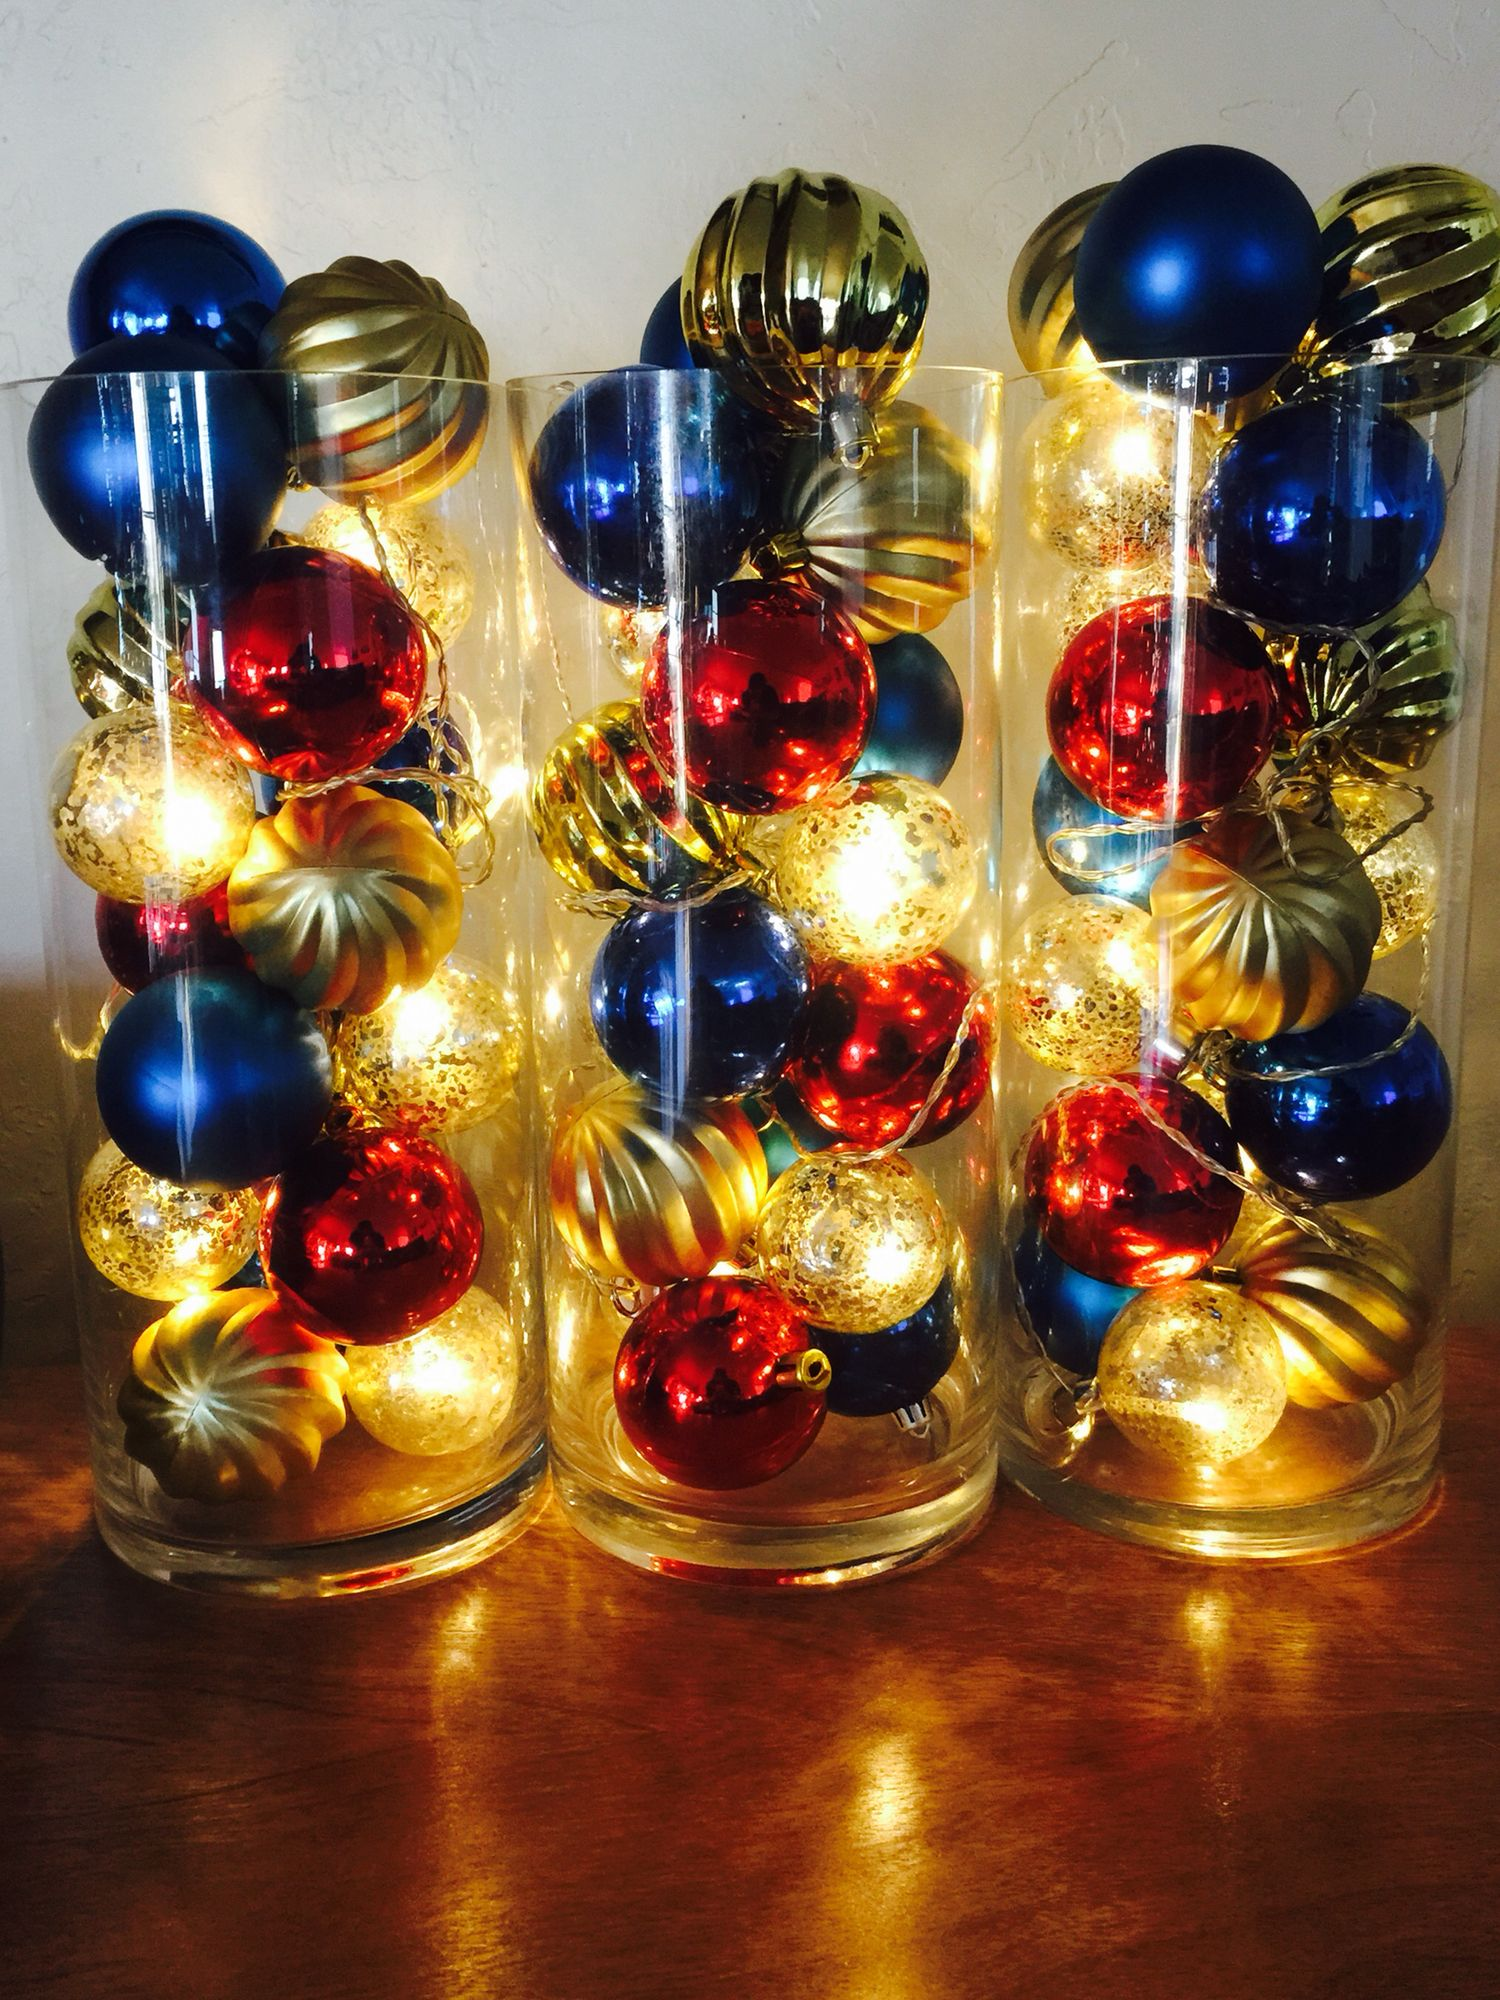 Create A Dramatic Glowing Holiday Centerpiece With A Glass